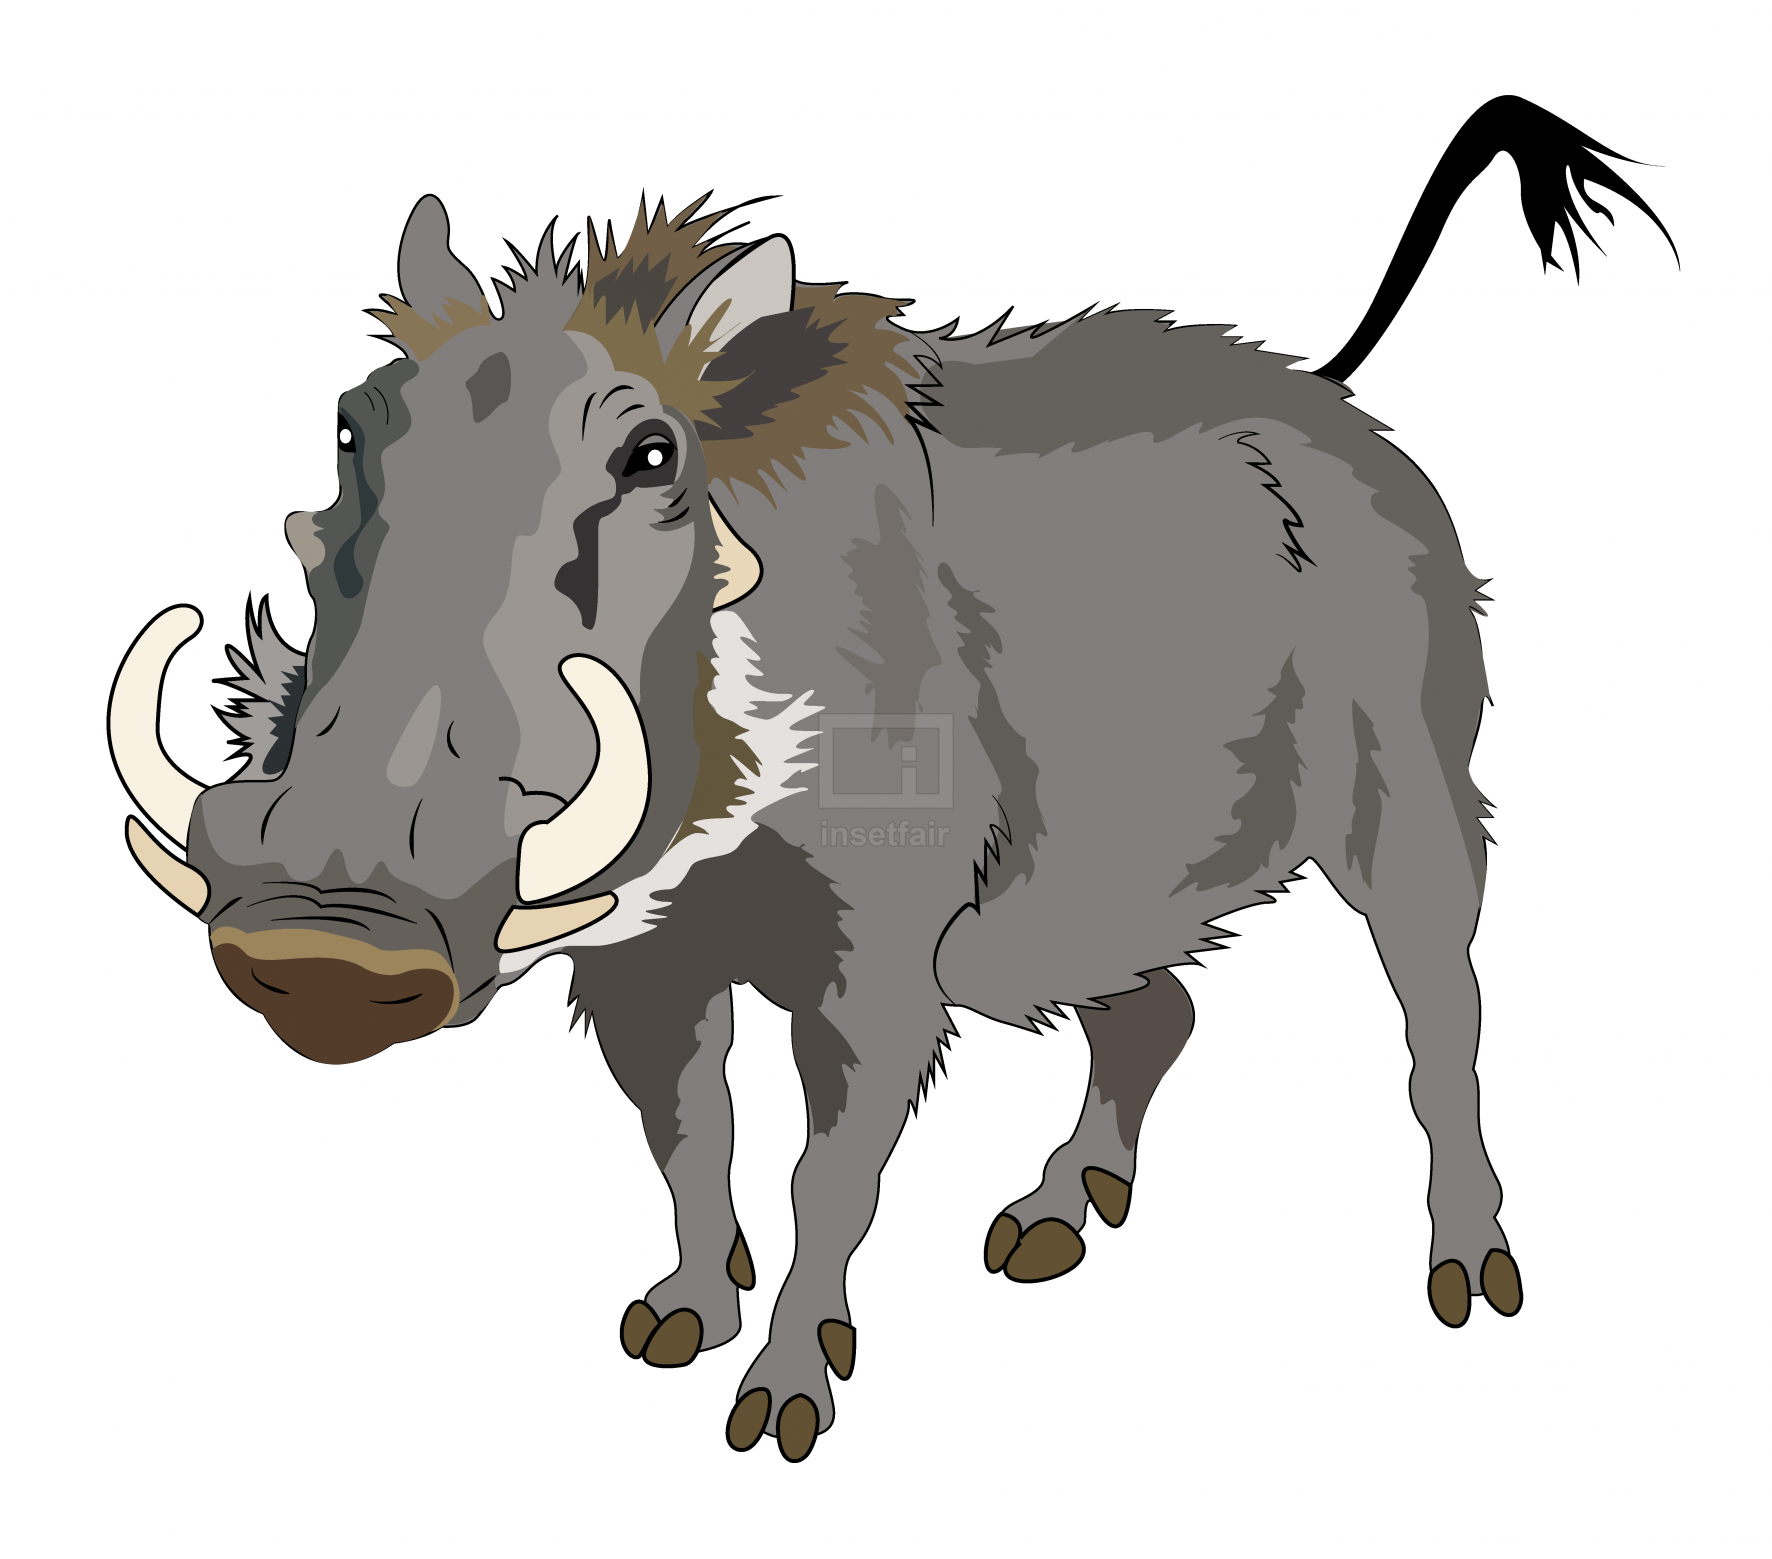 Warthog wild animal vector illustration free for commercial use at Insetfair